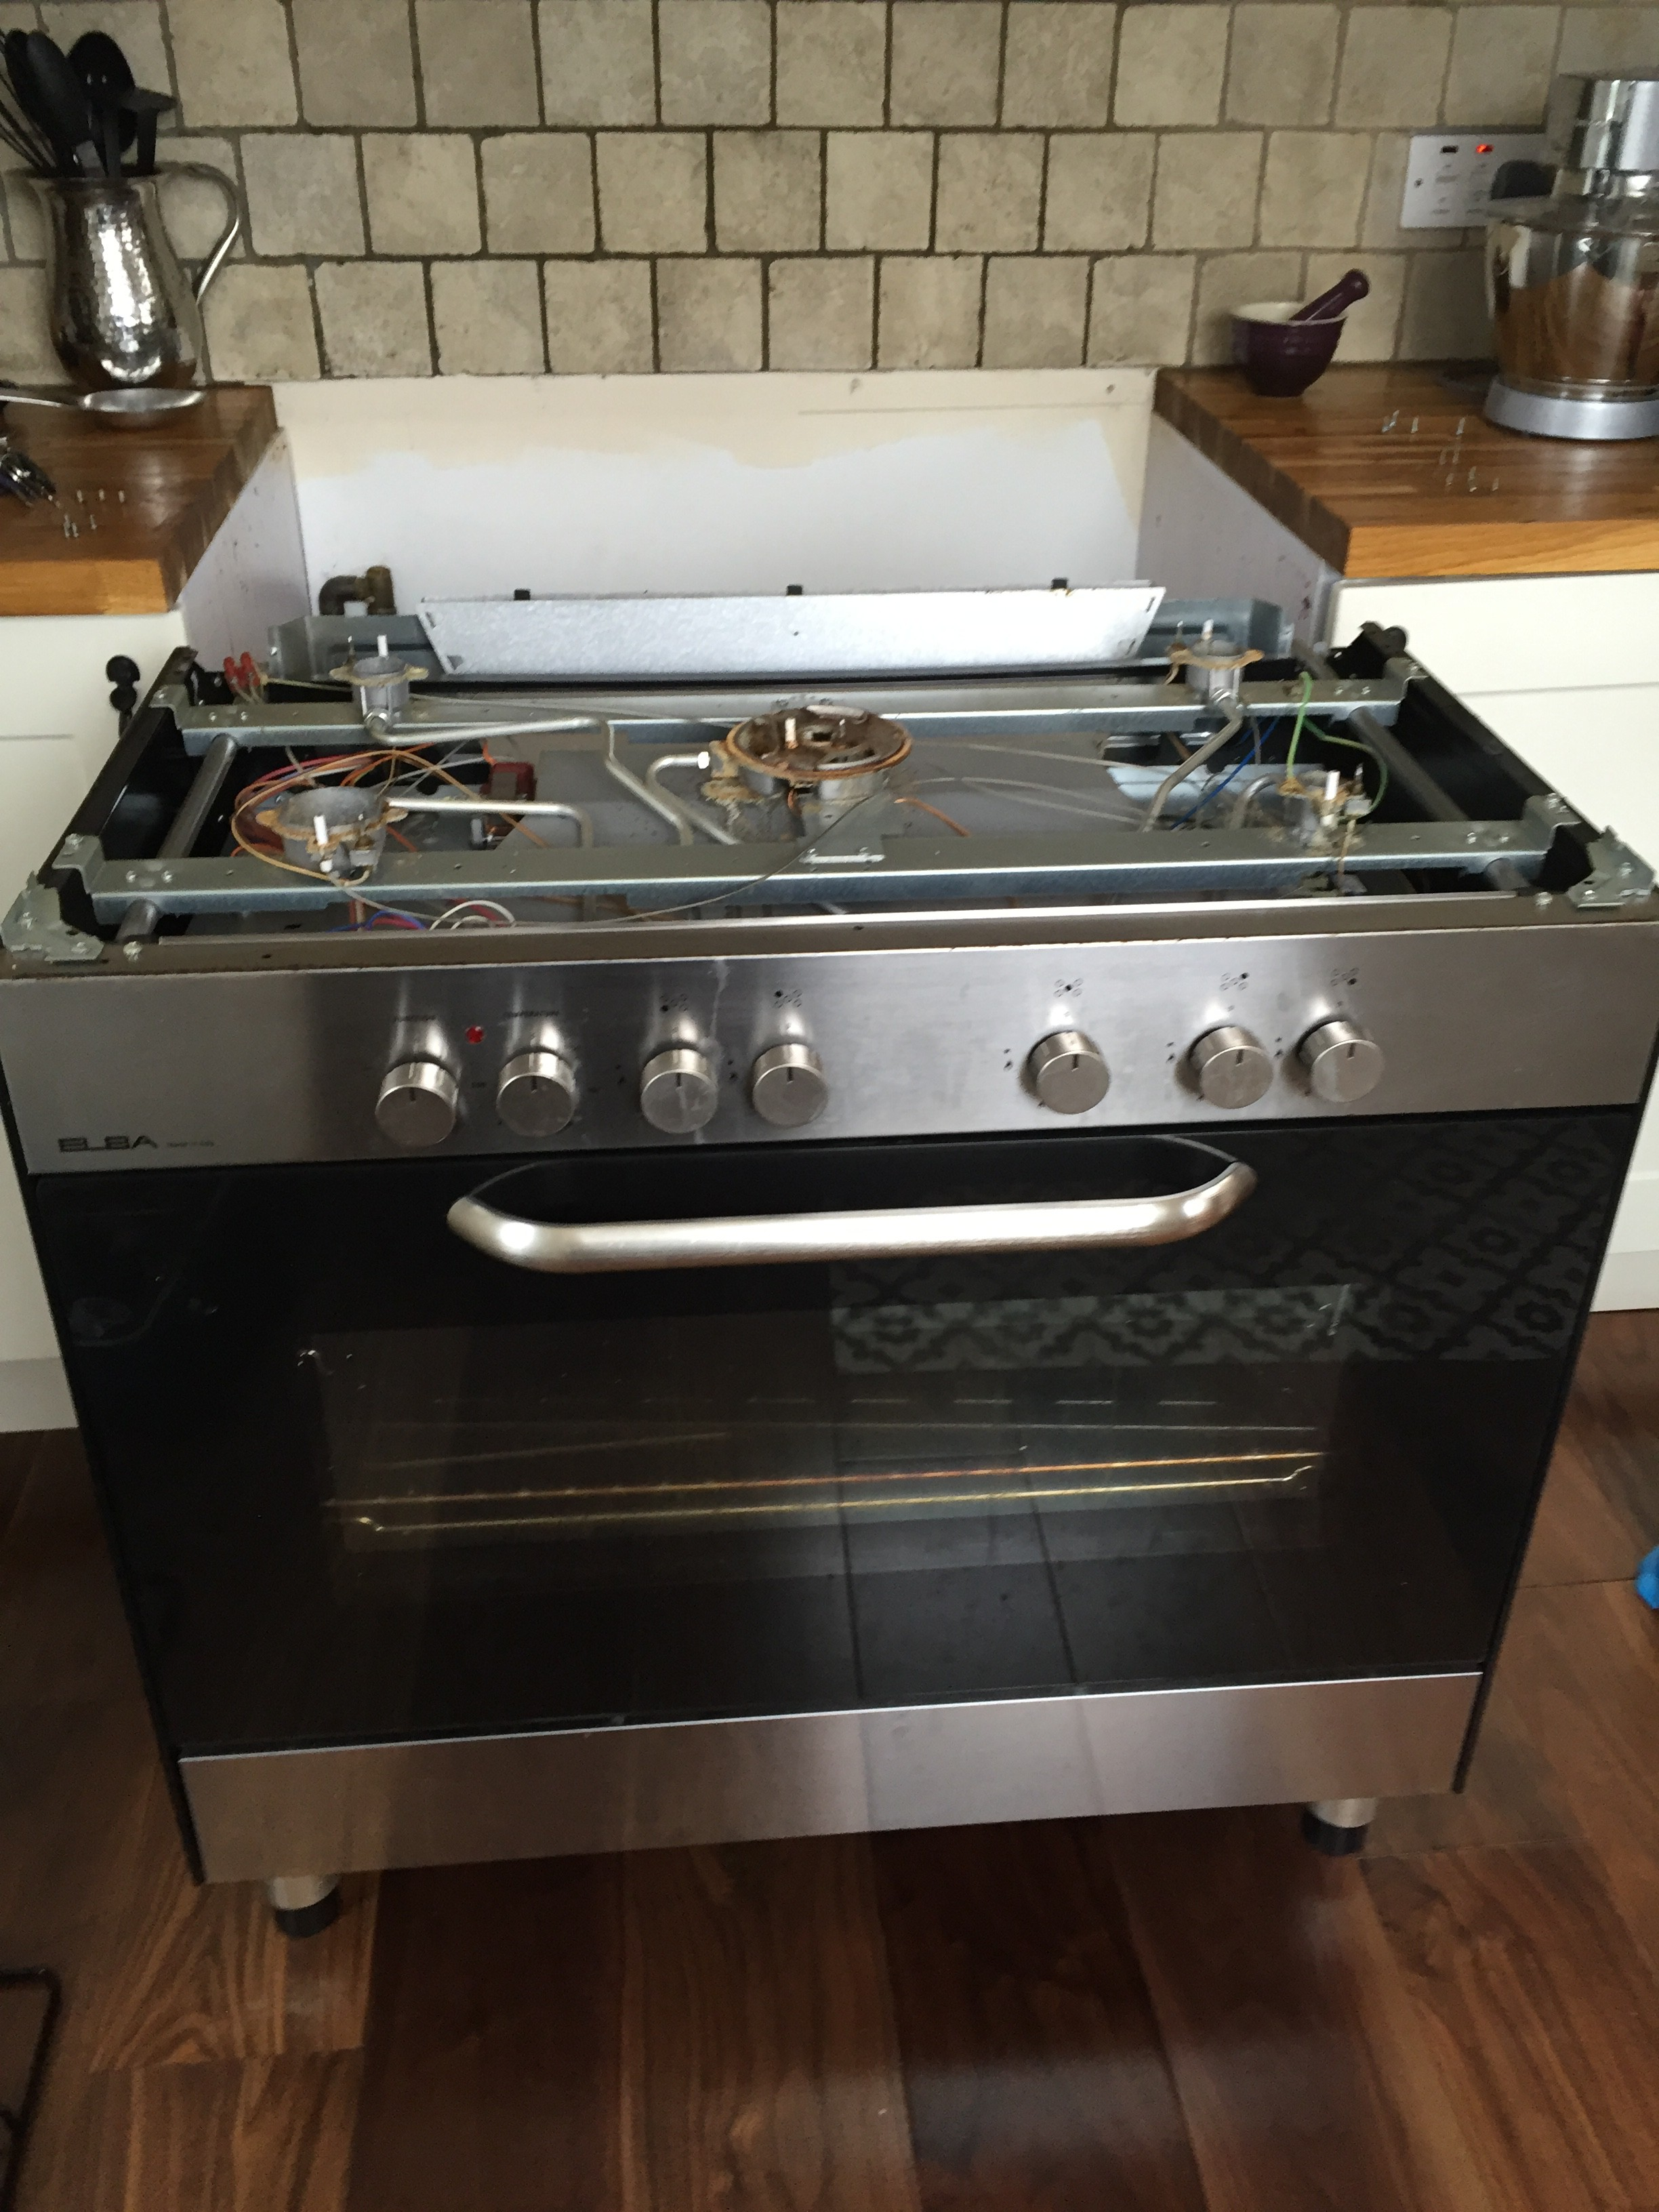 Cooker During Repair